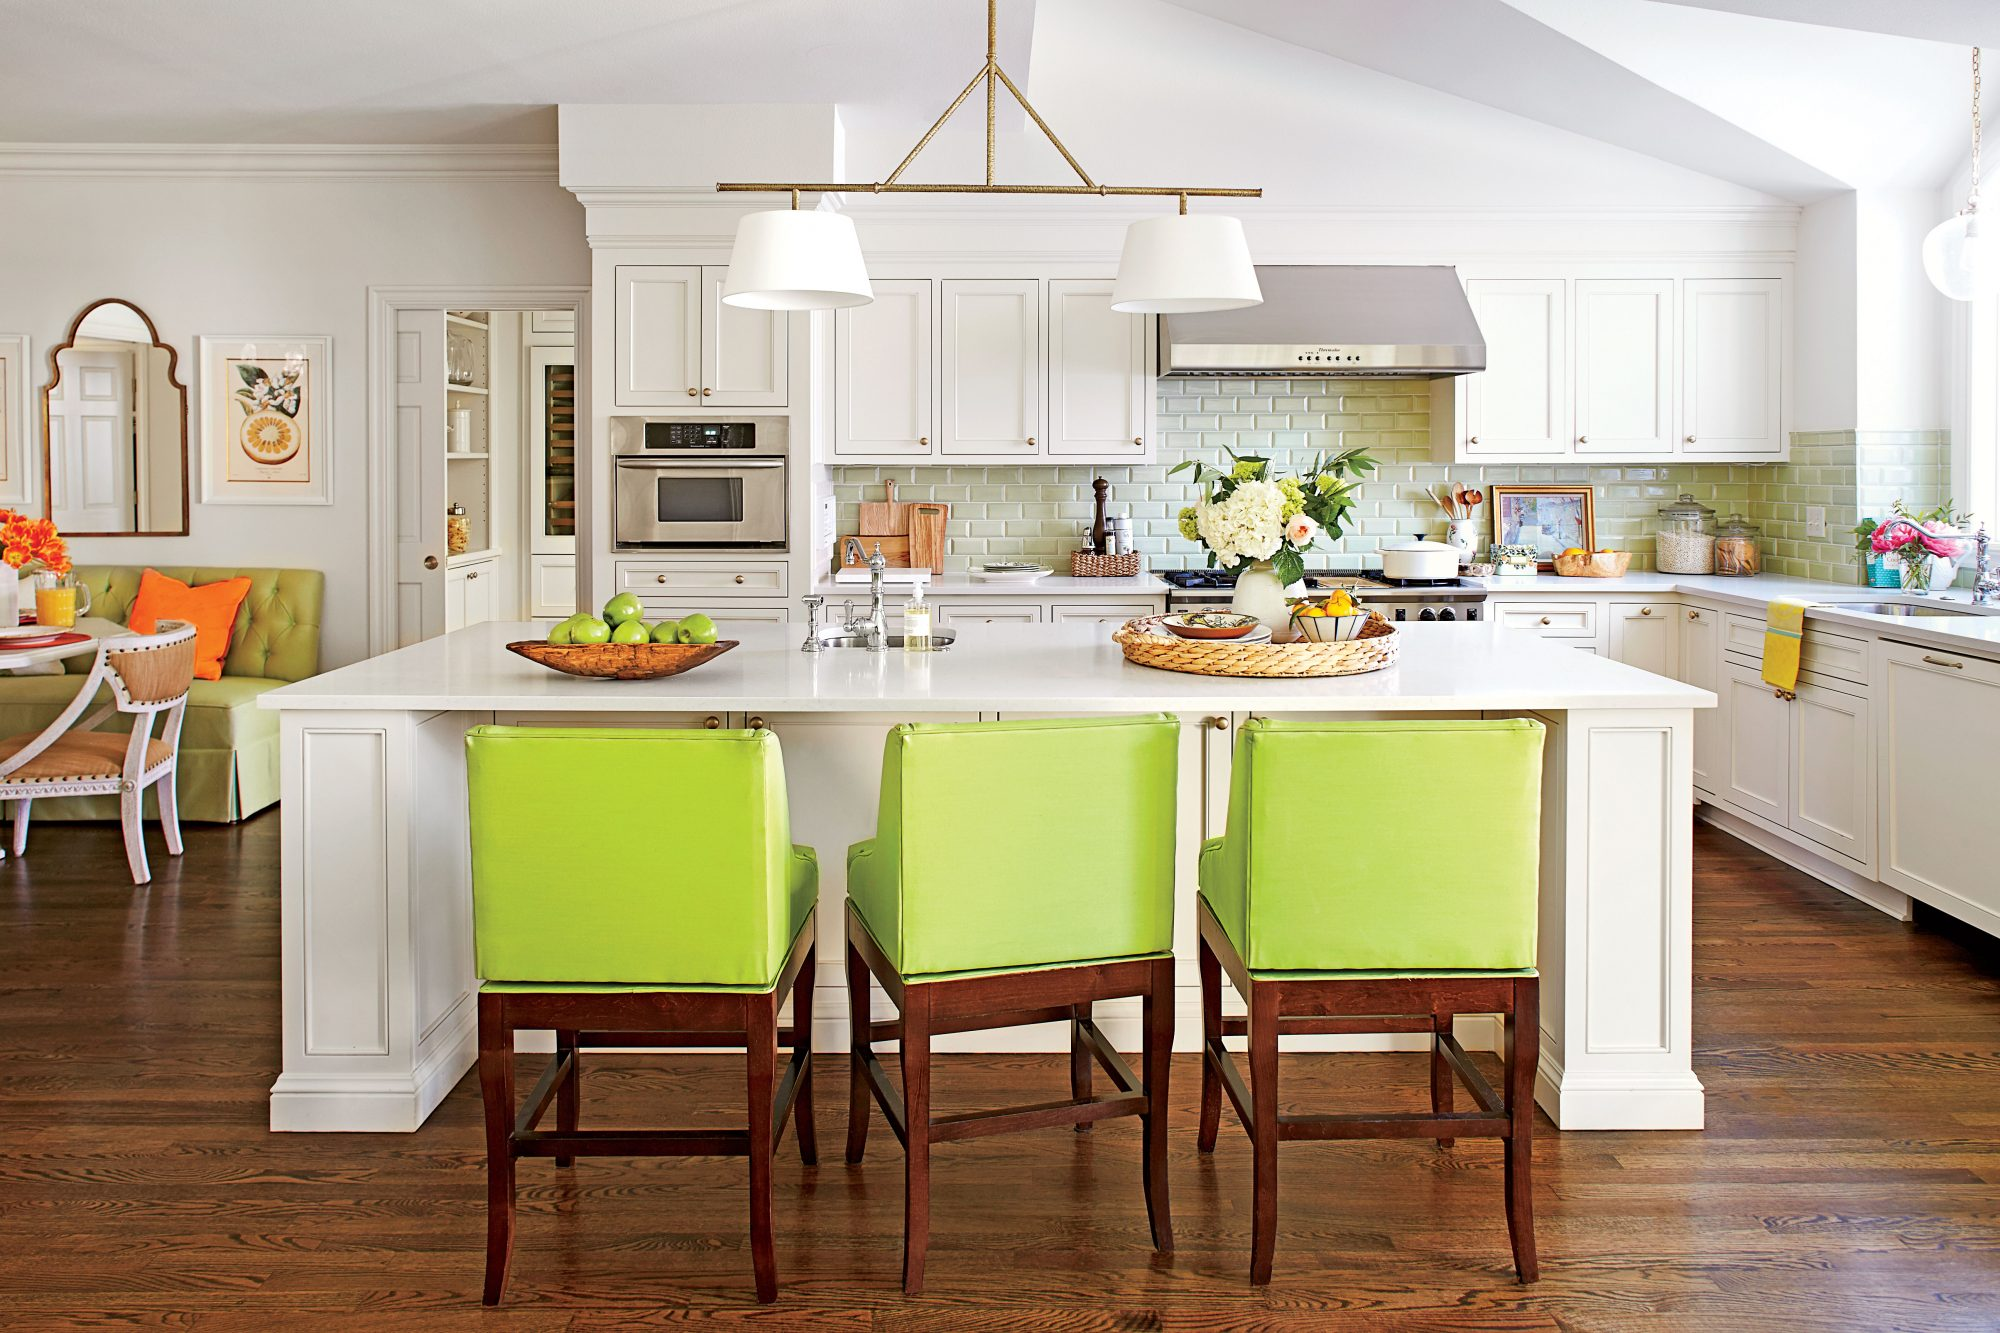 Family-Friendly Kitchen Materials